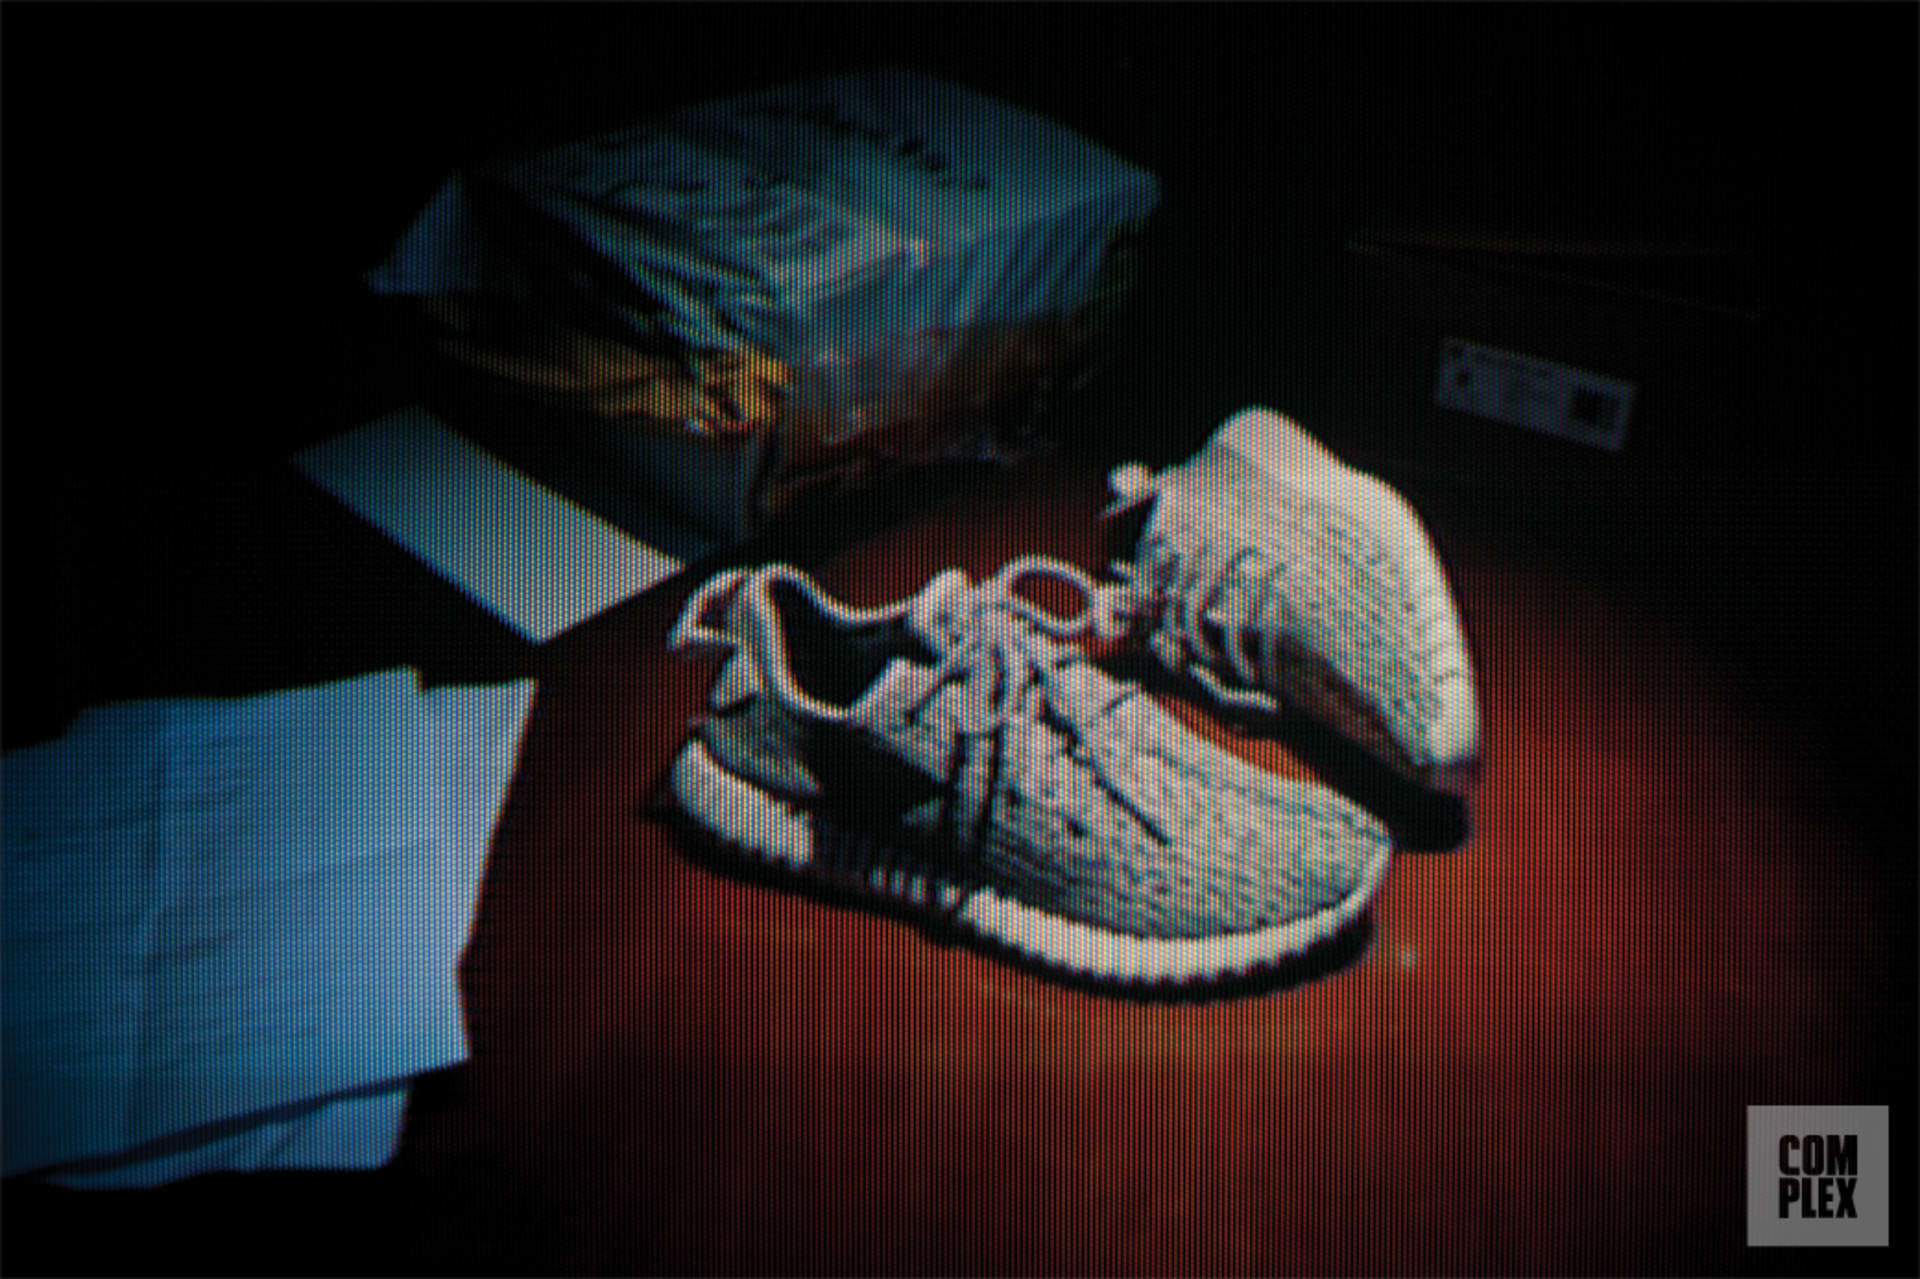 Collectors Shoe Fake Their Share ExperiencesComplex 2YWIDHE9